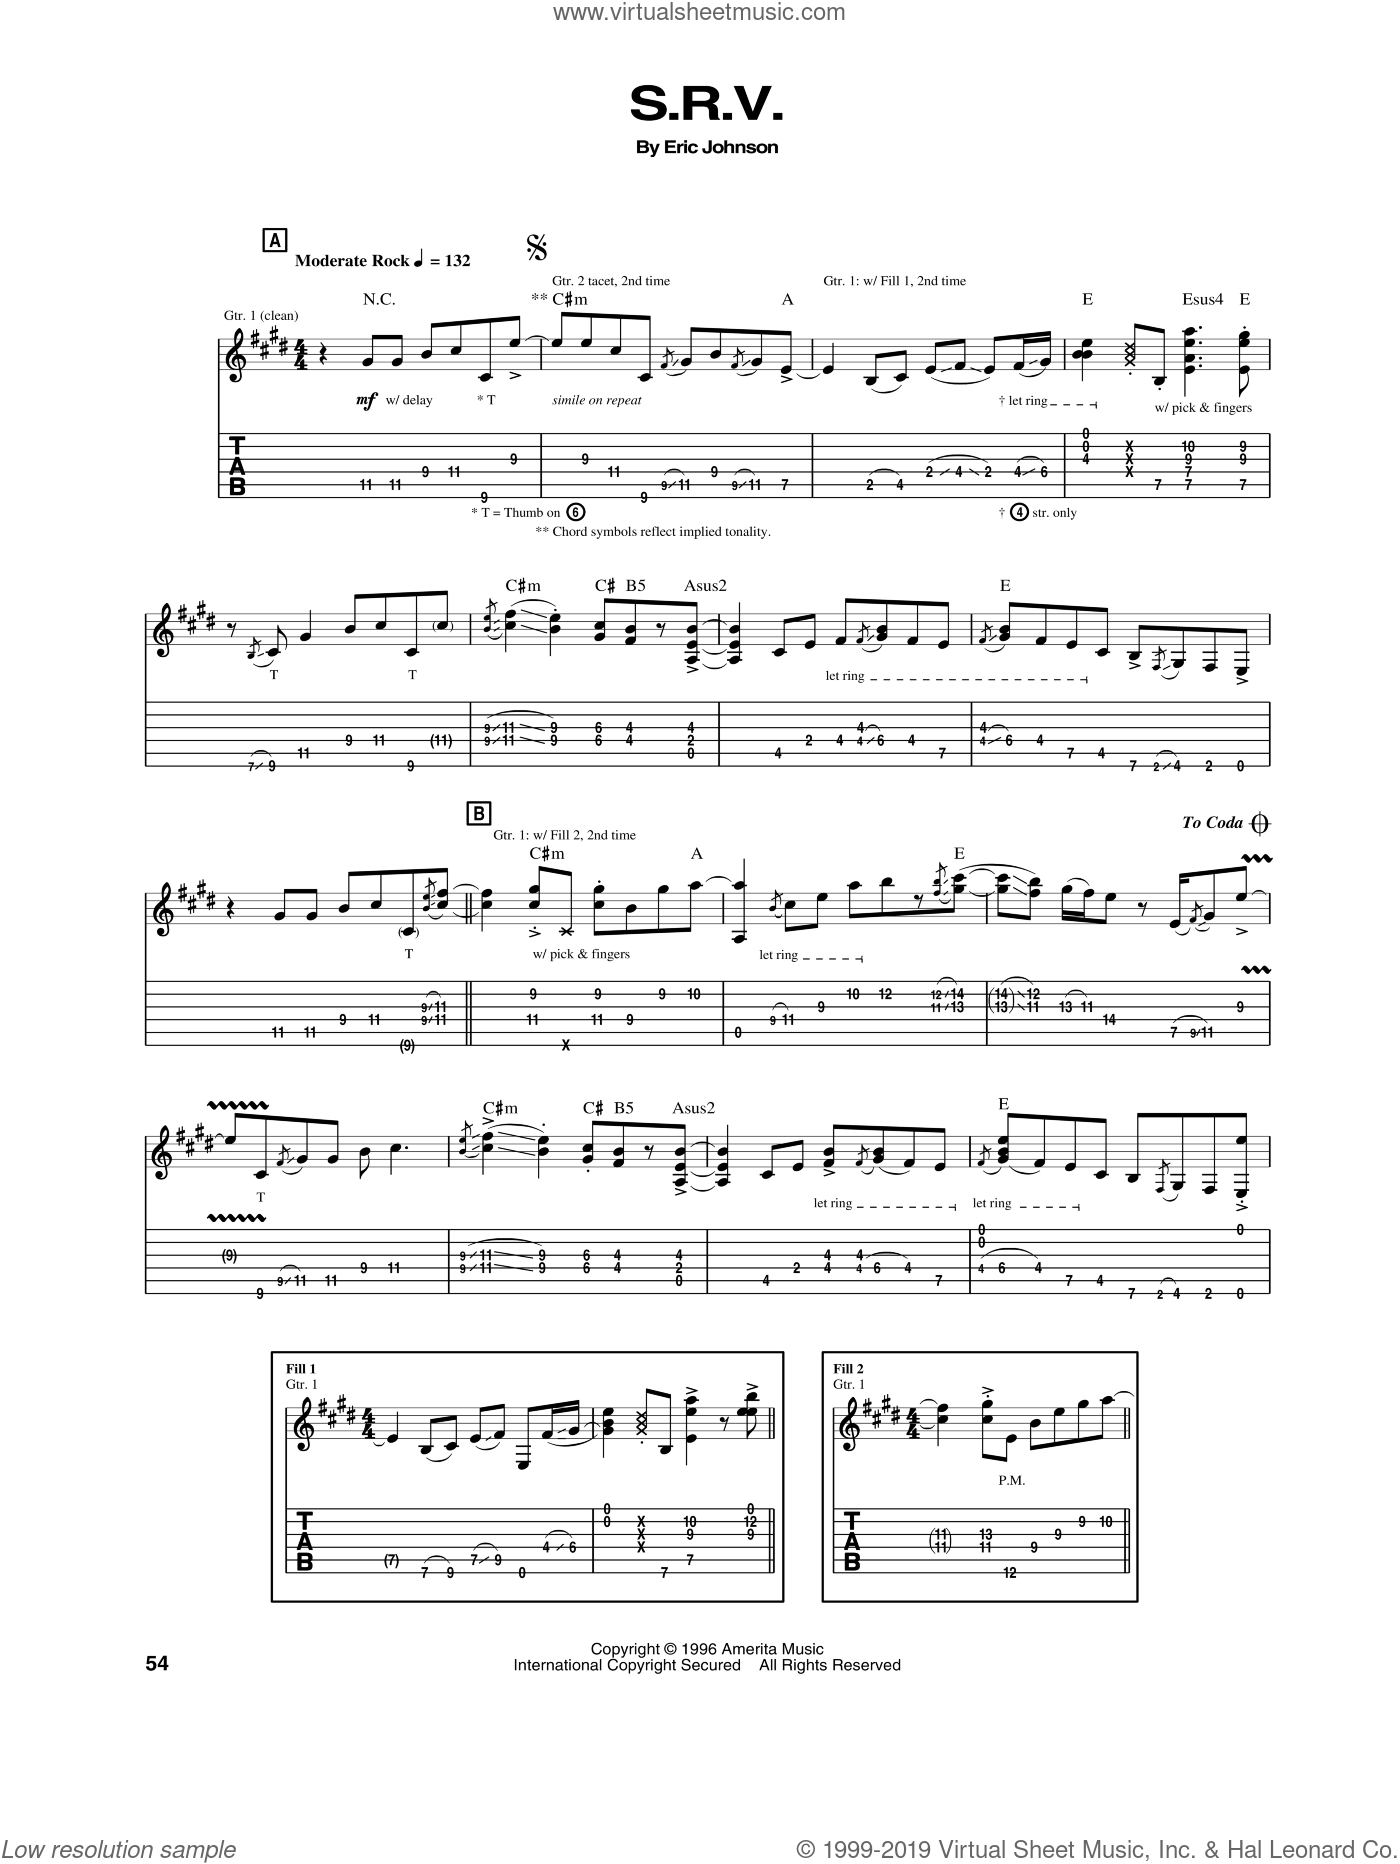 S.R.V. sheet music for guitar (tablature) by Eric Johnson